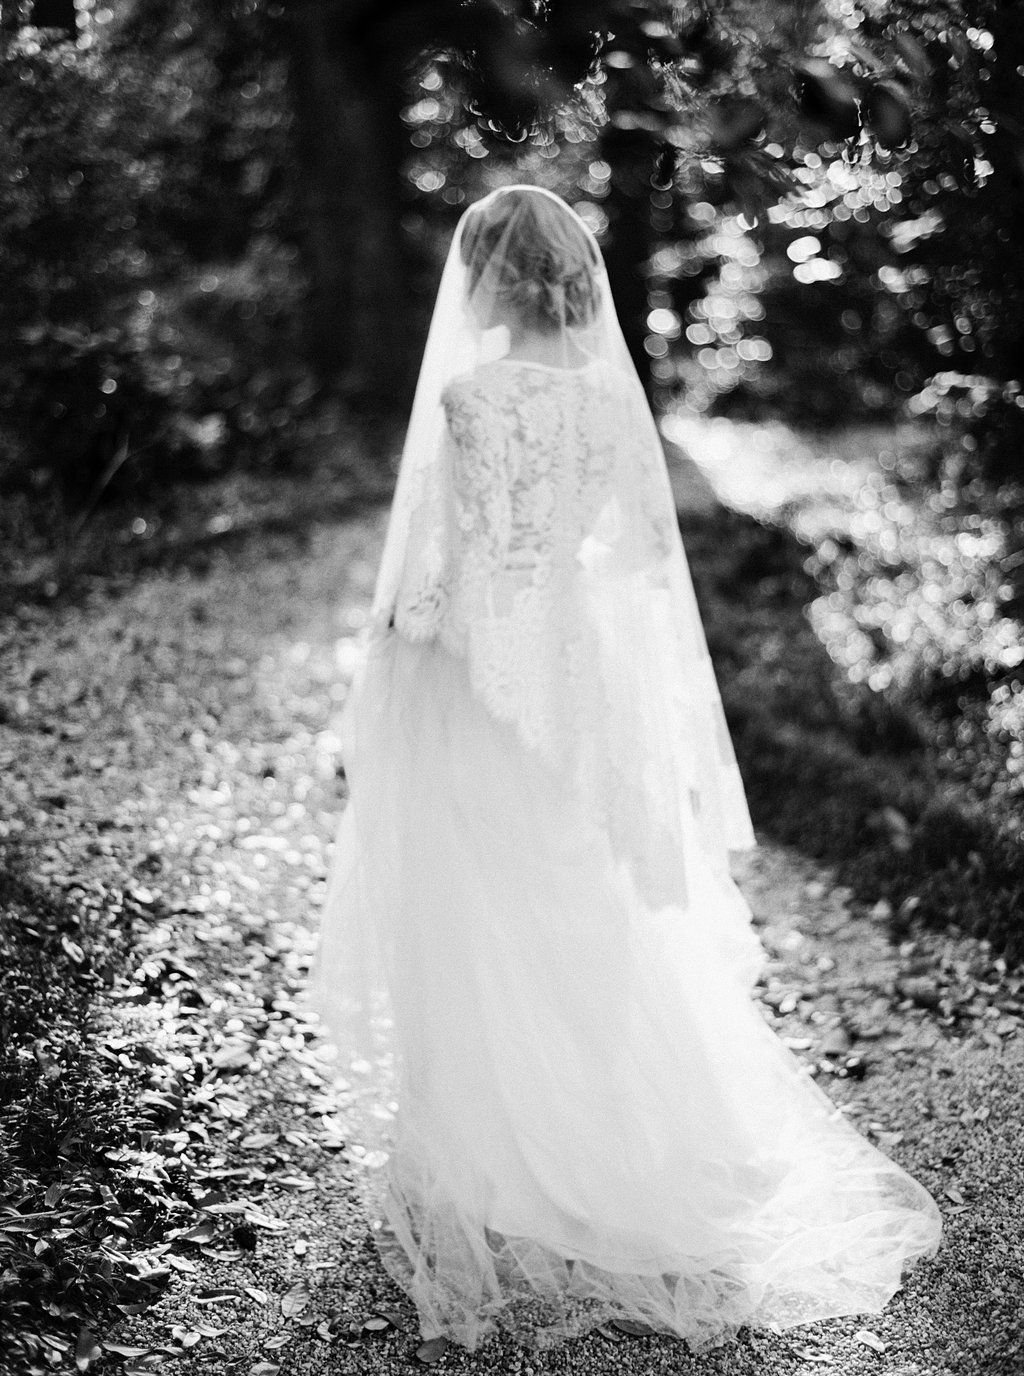 Long veil wedding dresses  Lace wedding dress and veil by Emily Riggs image by Erich McVey